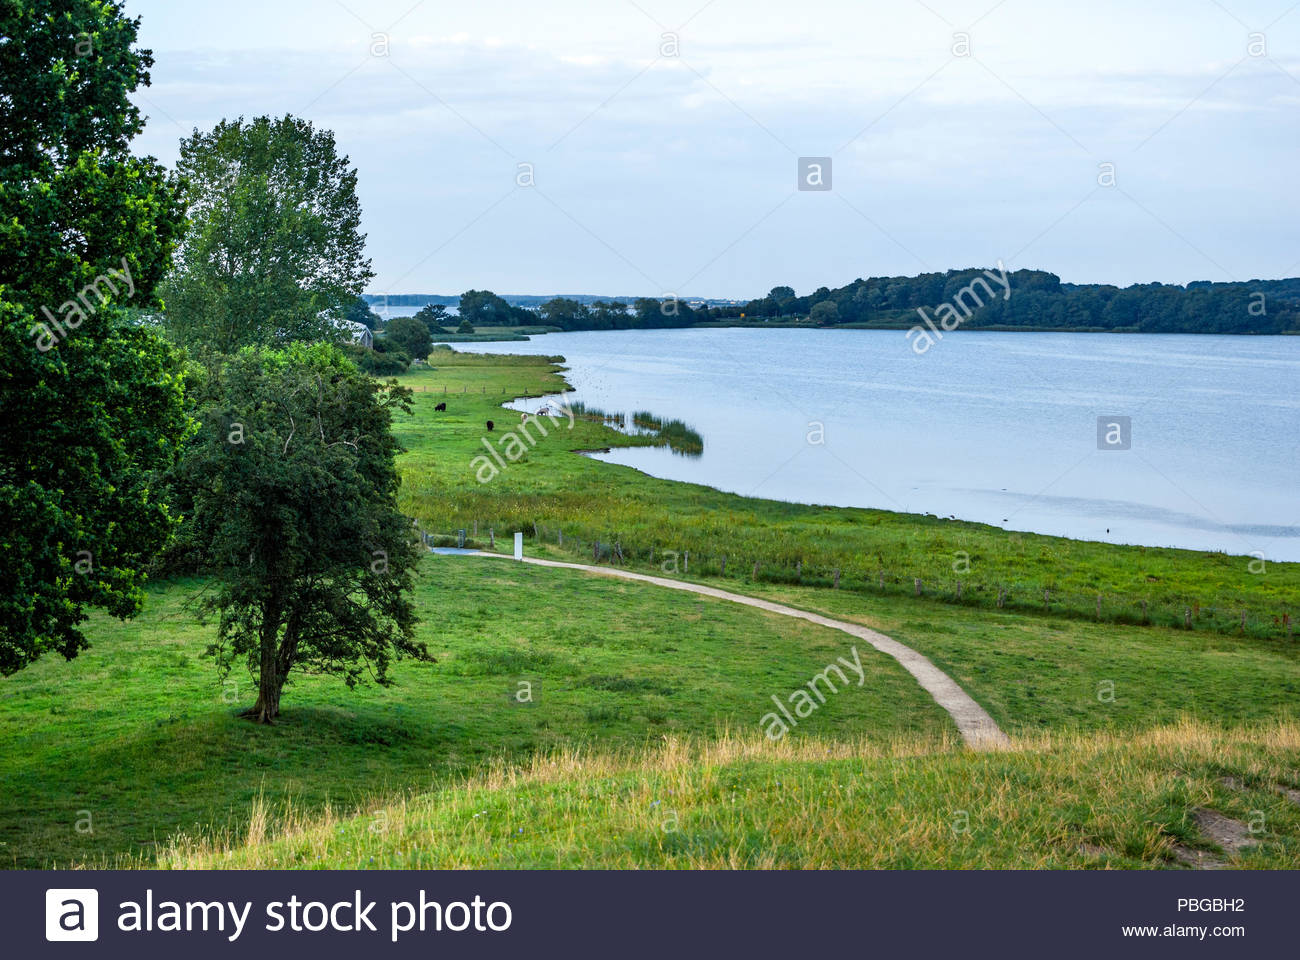 Haddebyer Noor and the Schlei beyond are seen from atop the Dannevirke rampart that encircles Haithabu. - Stock Image